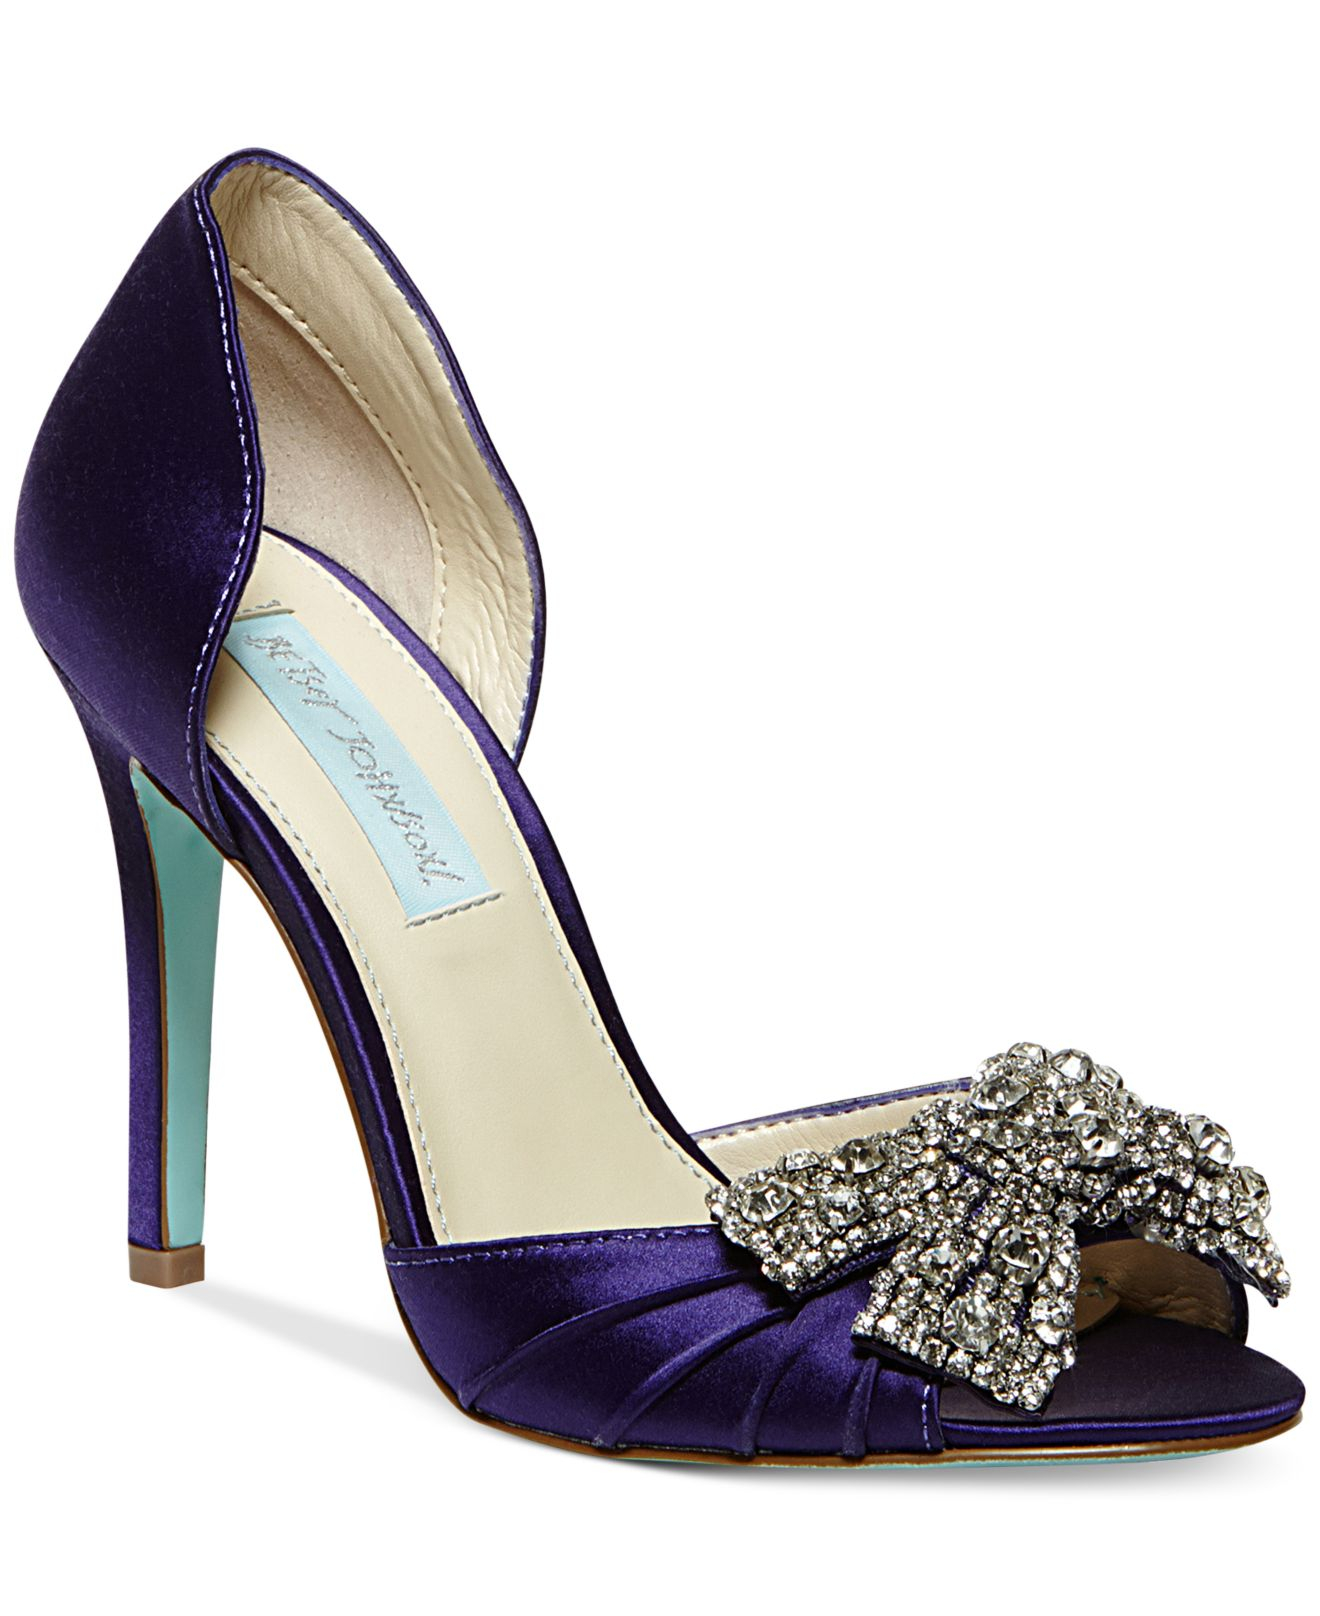 Betsey johnson Blue By Gown Evening Pumps in Purple   Lyst